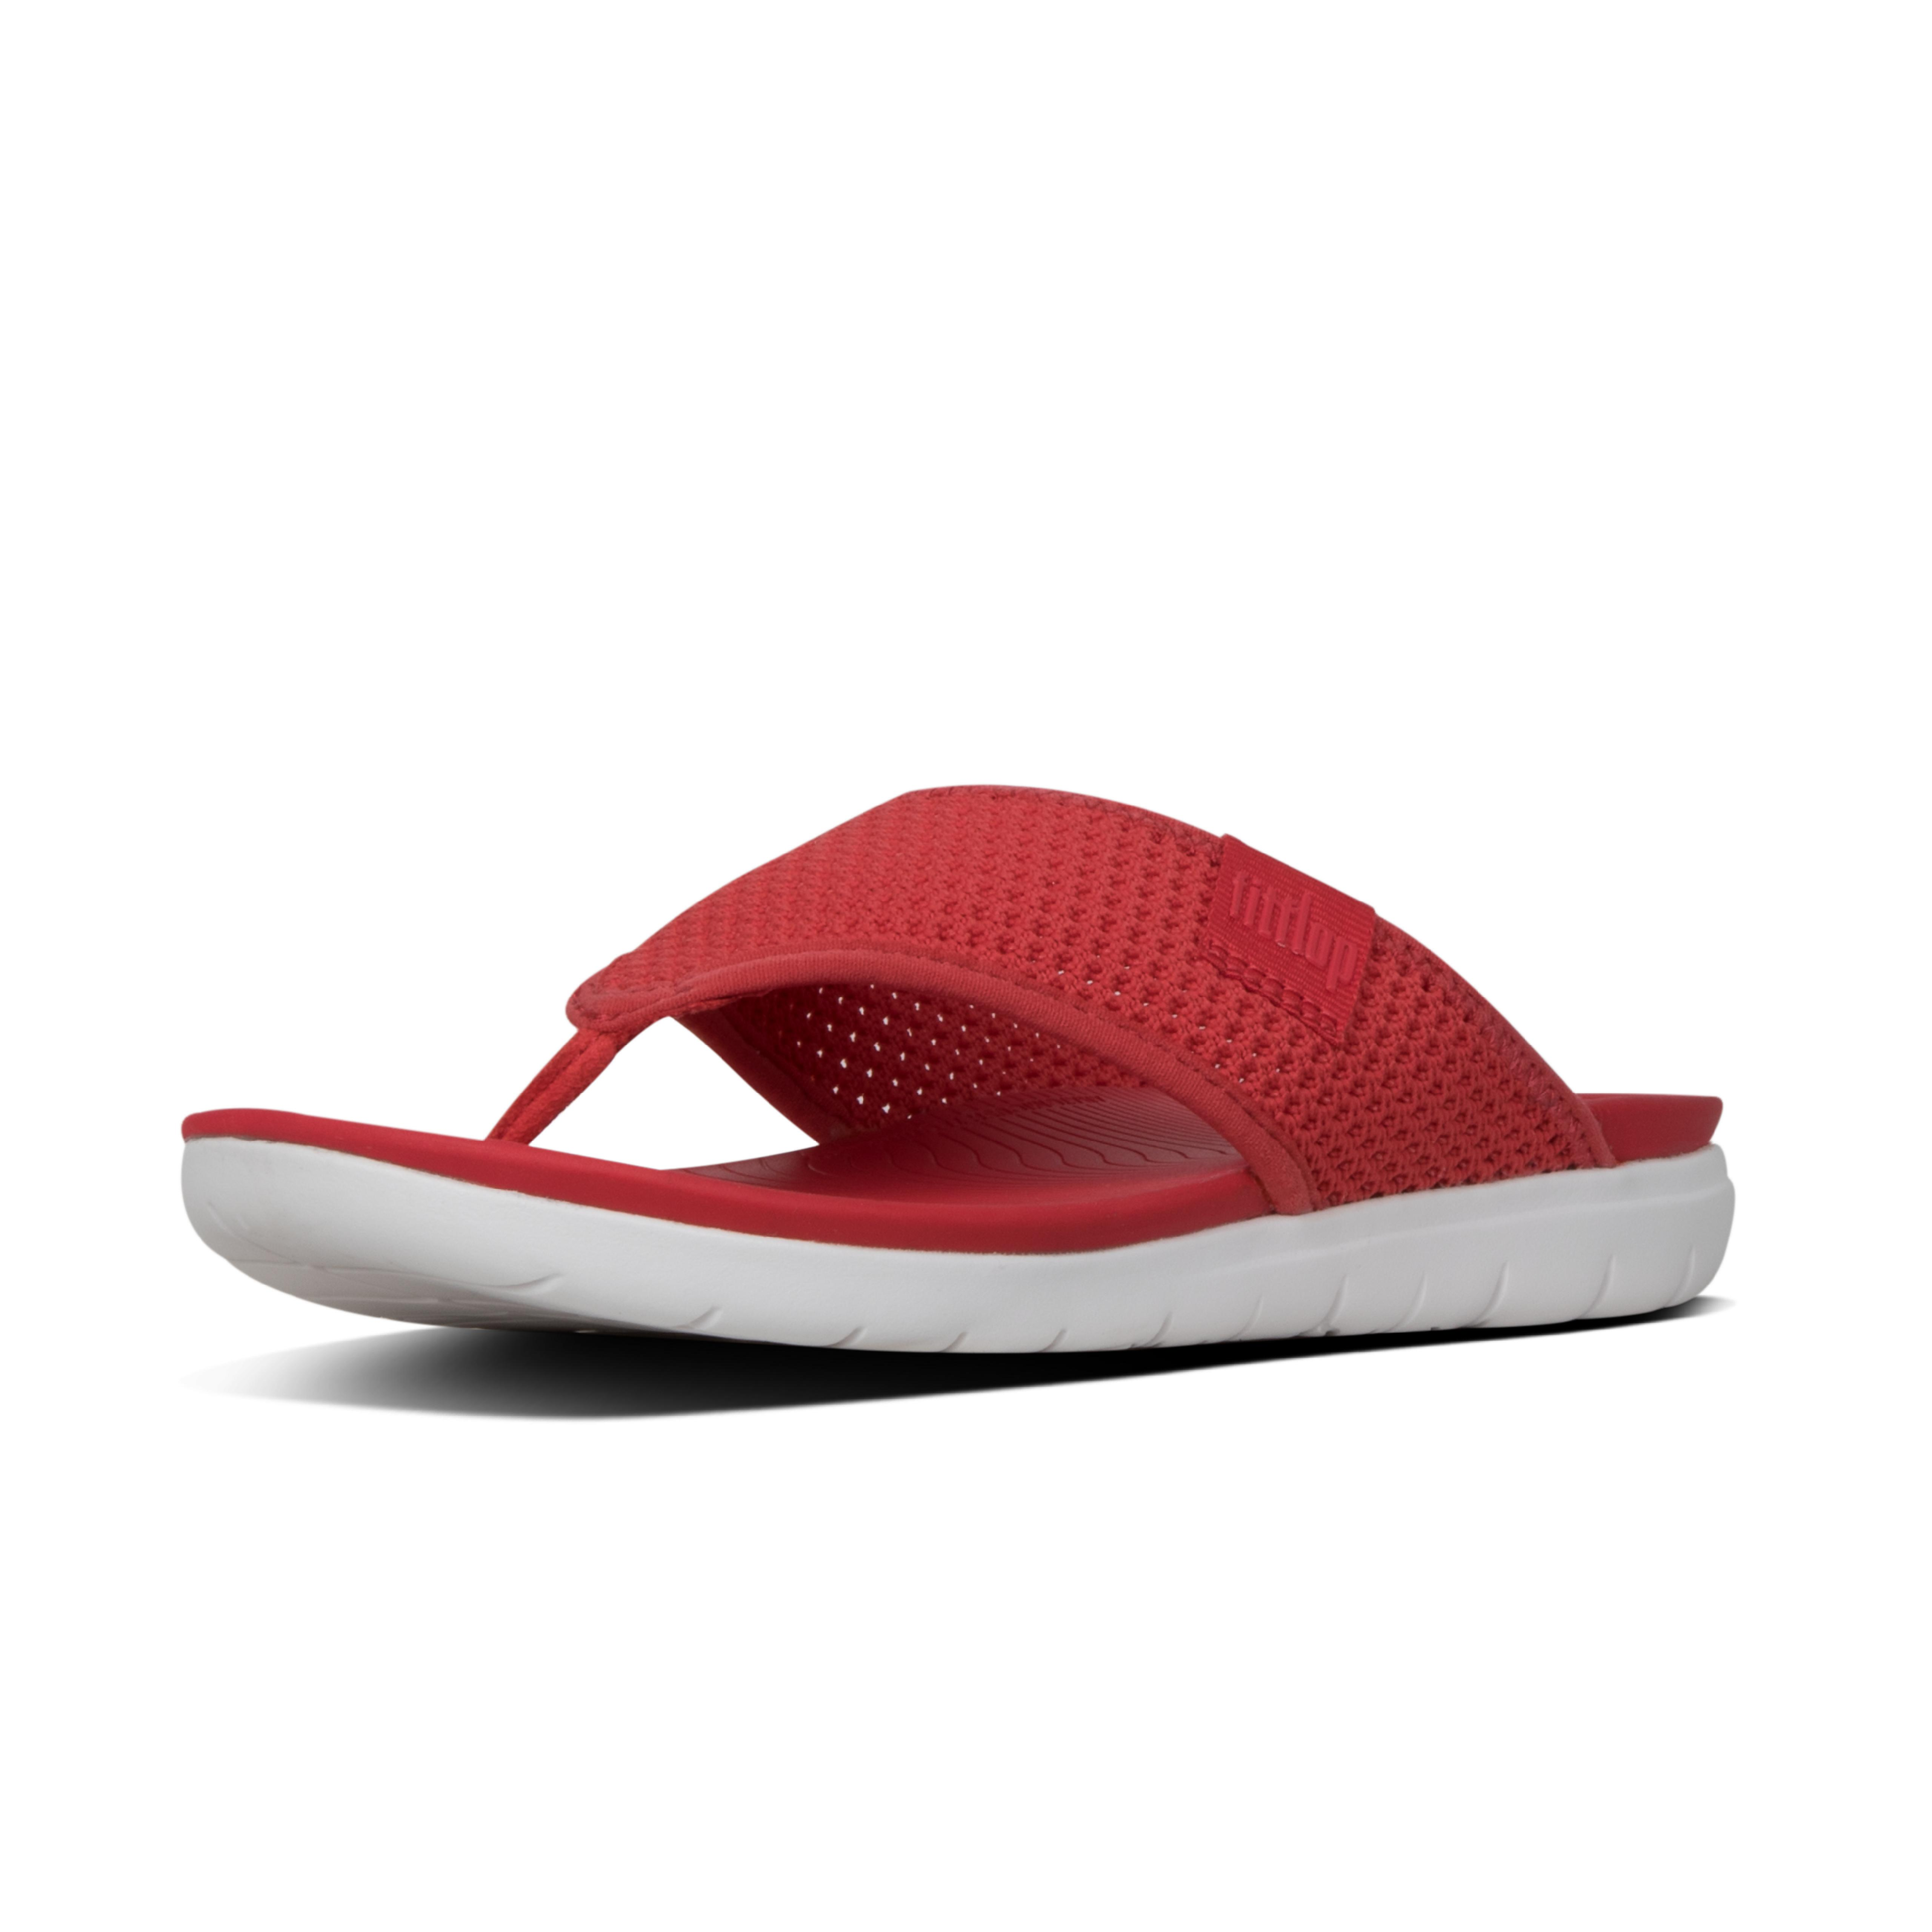 Airmesh toe post passion red r66 695?v=3